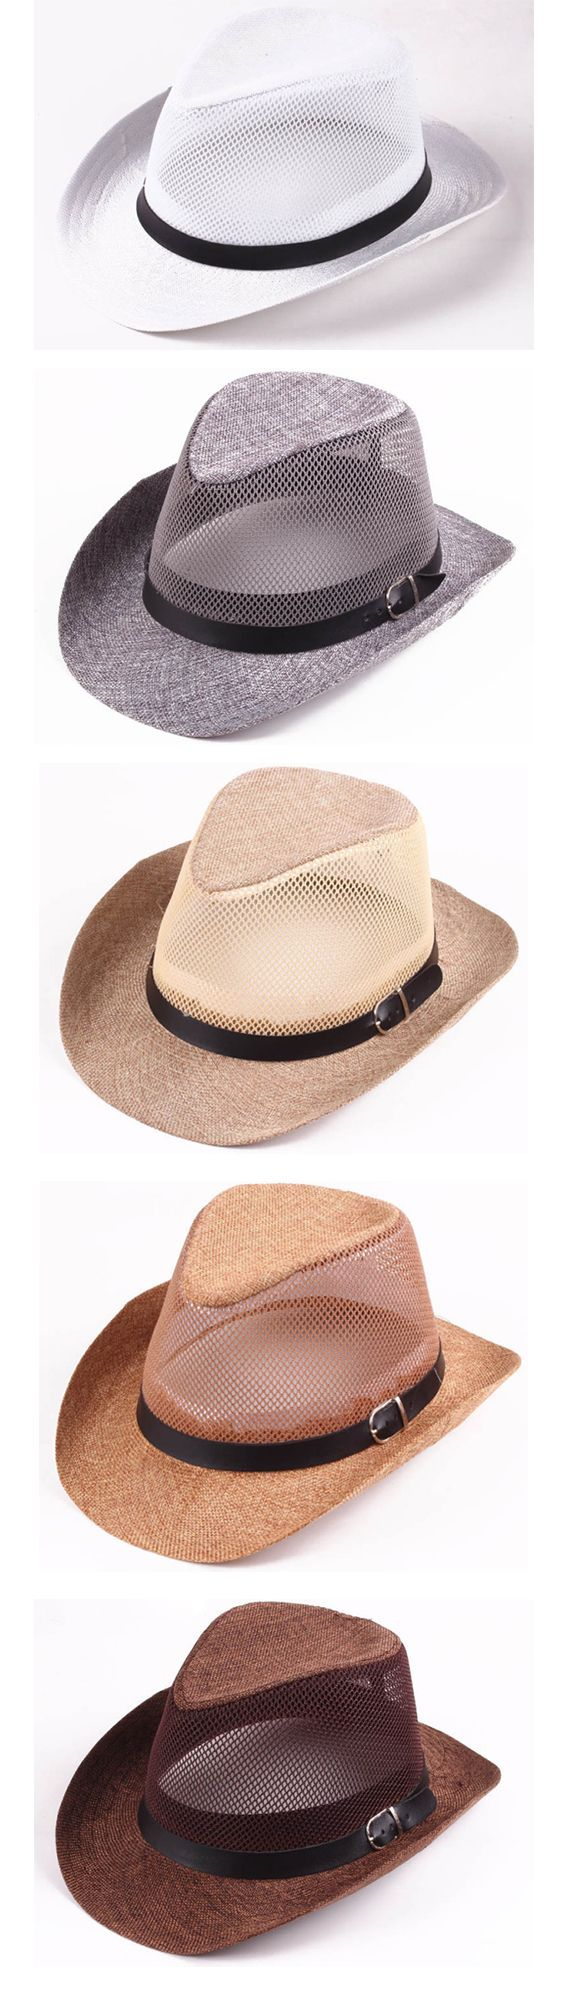 Men Hollow Out Mesh Top Hat / Wide Brim Casual Braid Fedora Beach Sun Flax Panama Jazz Hat